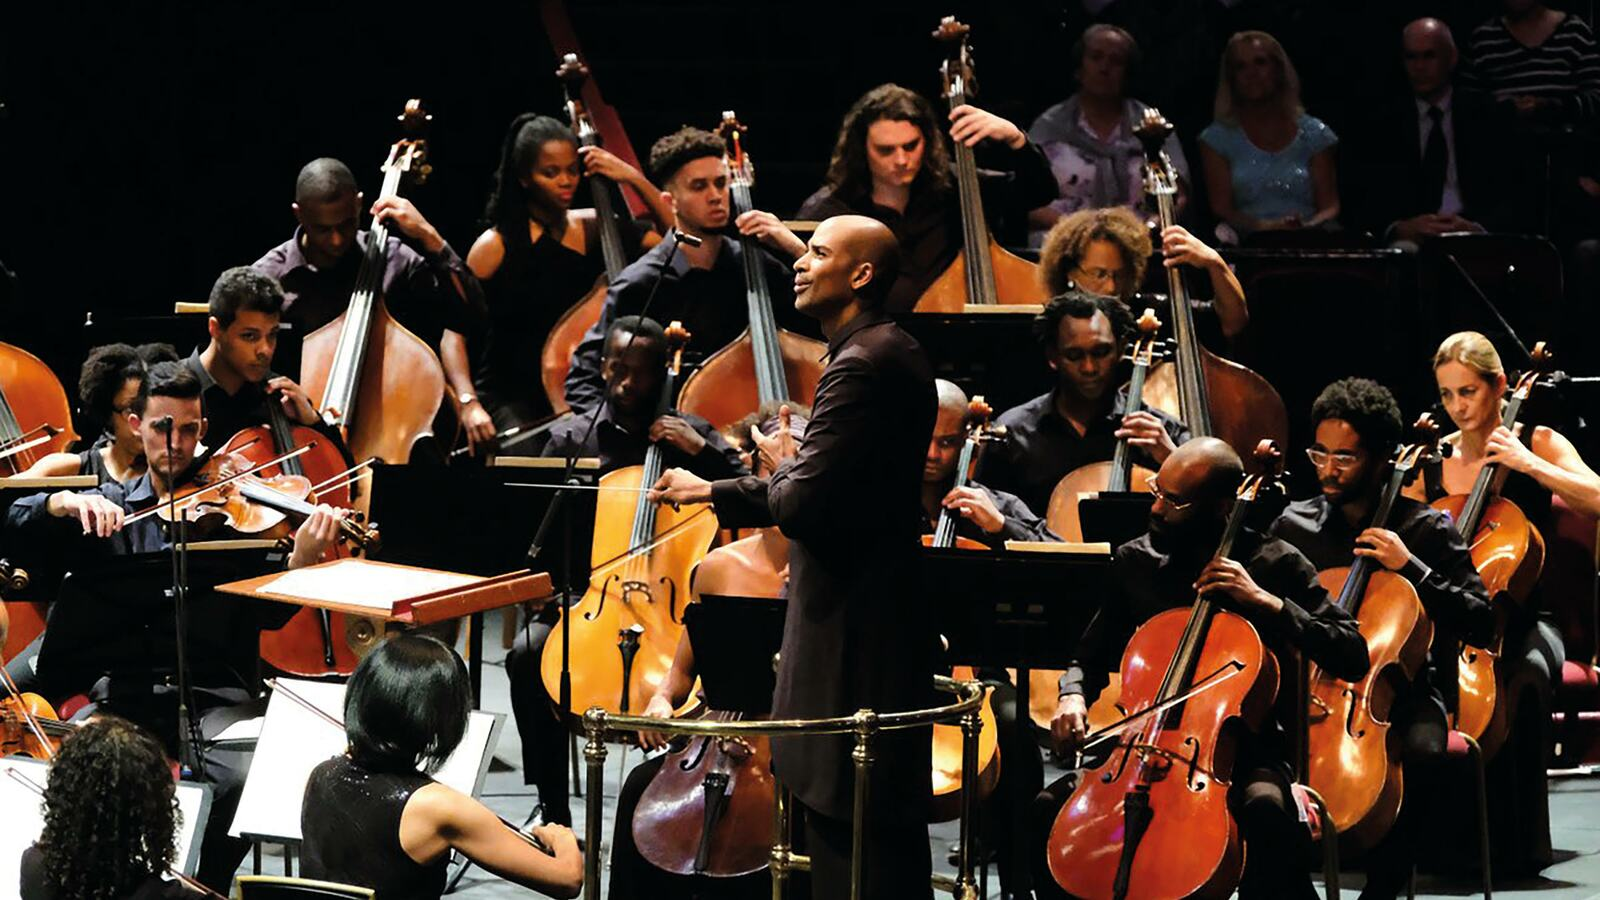 Chineke! Orchestra on stage